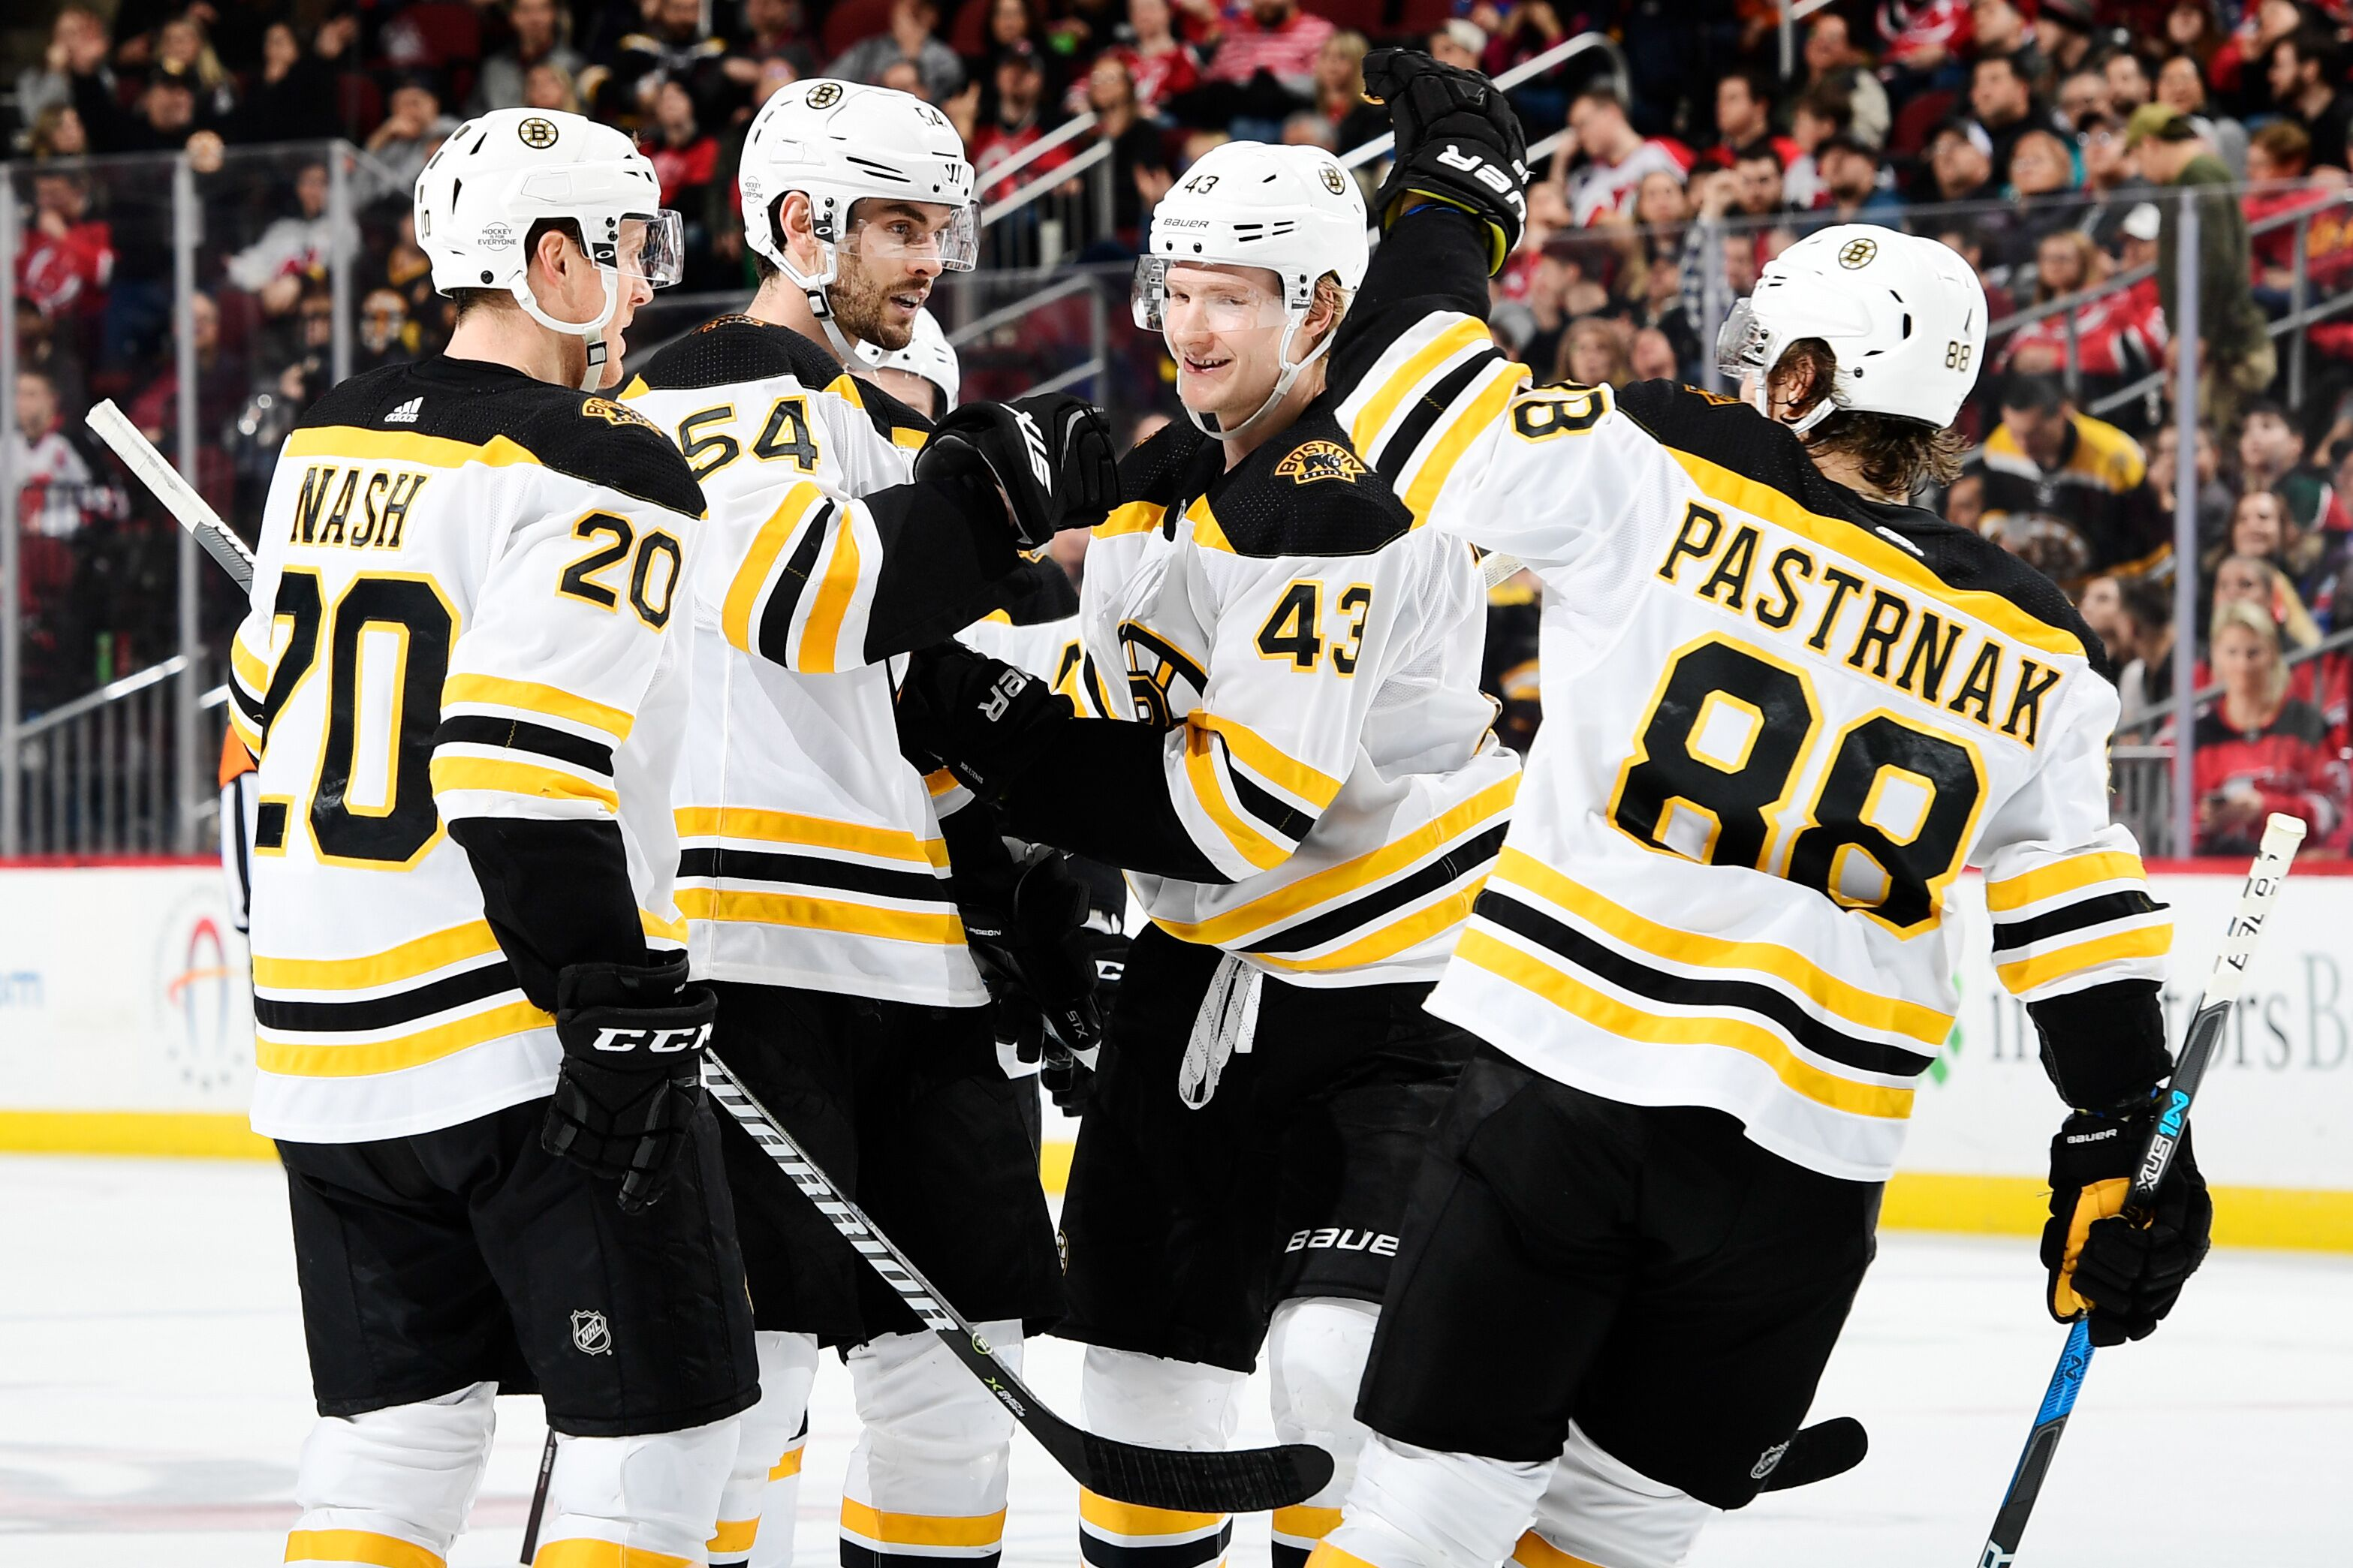 Yes, the Boston Bruins will win the 2018 Stanley Cup